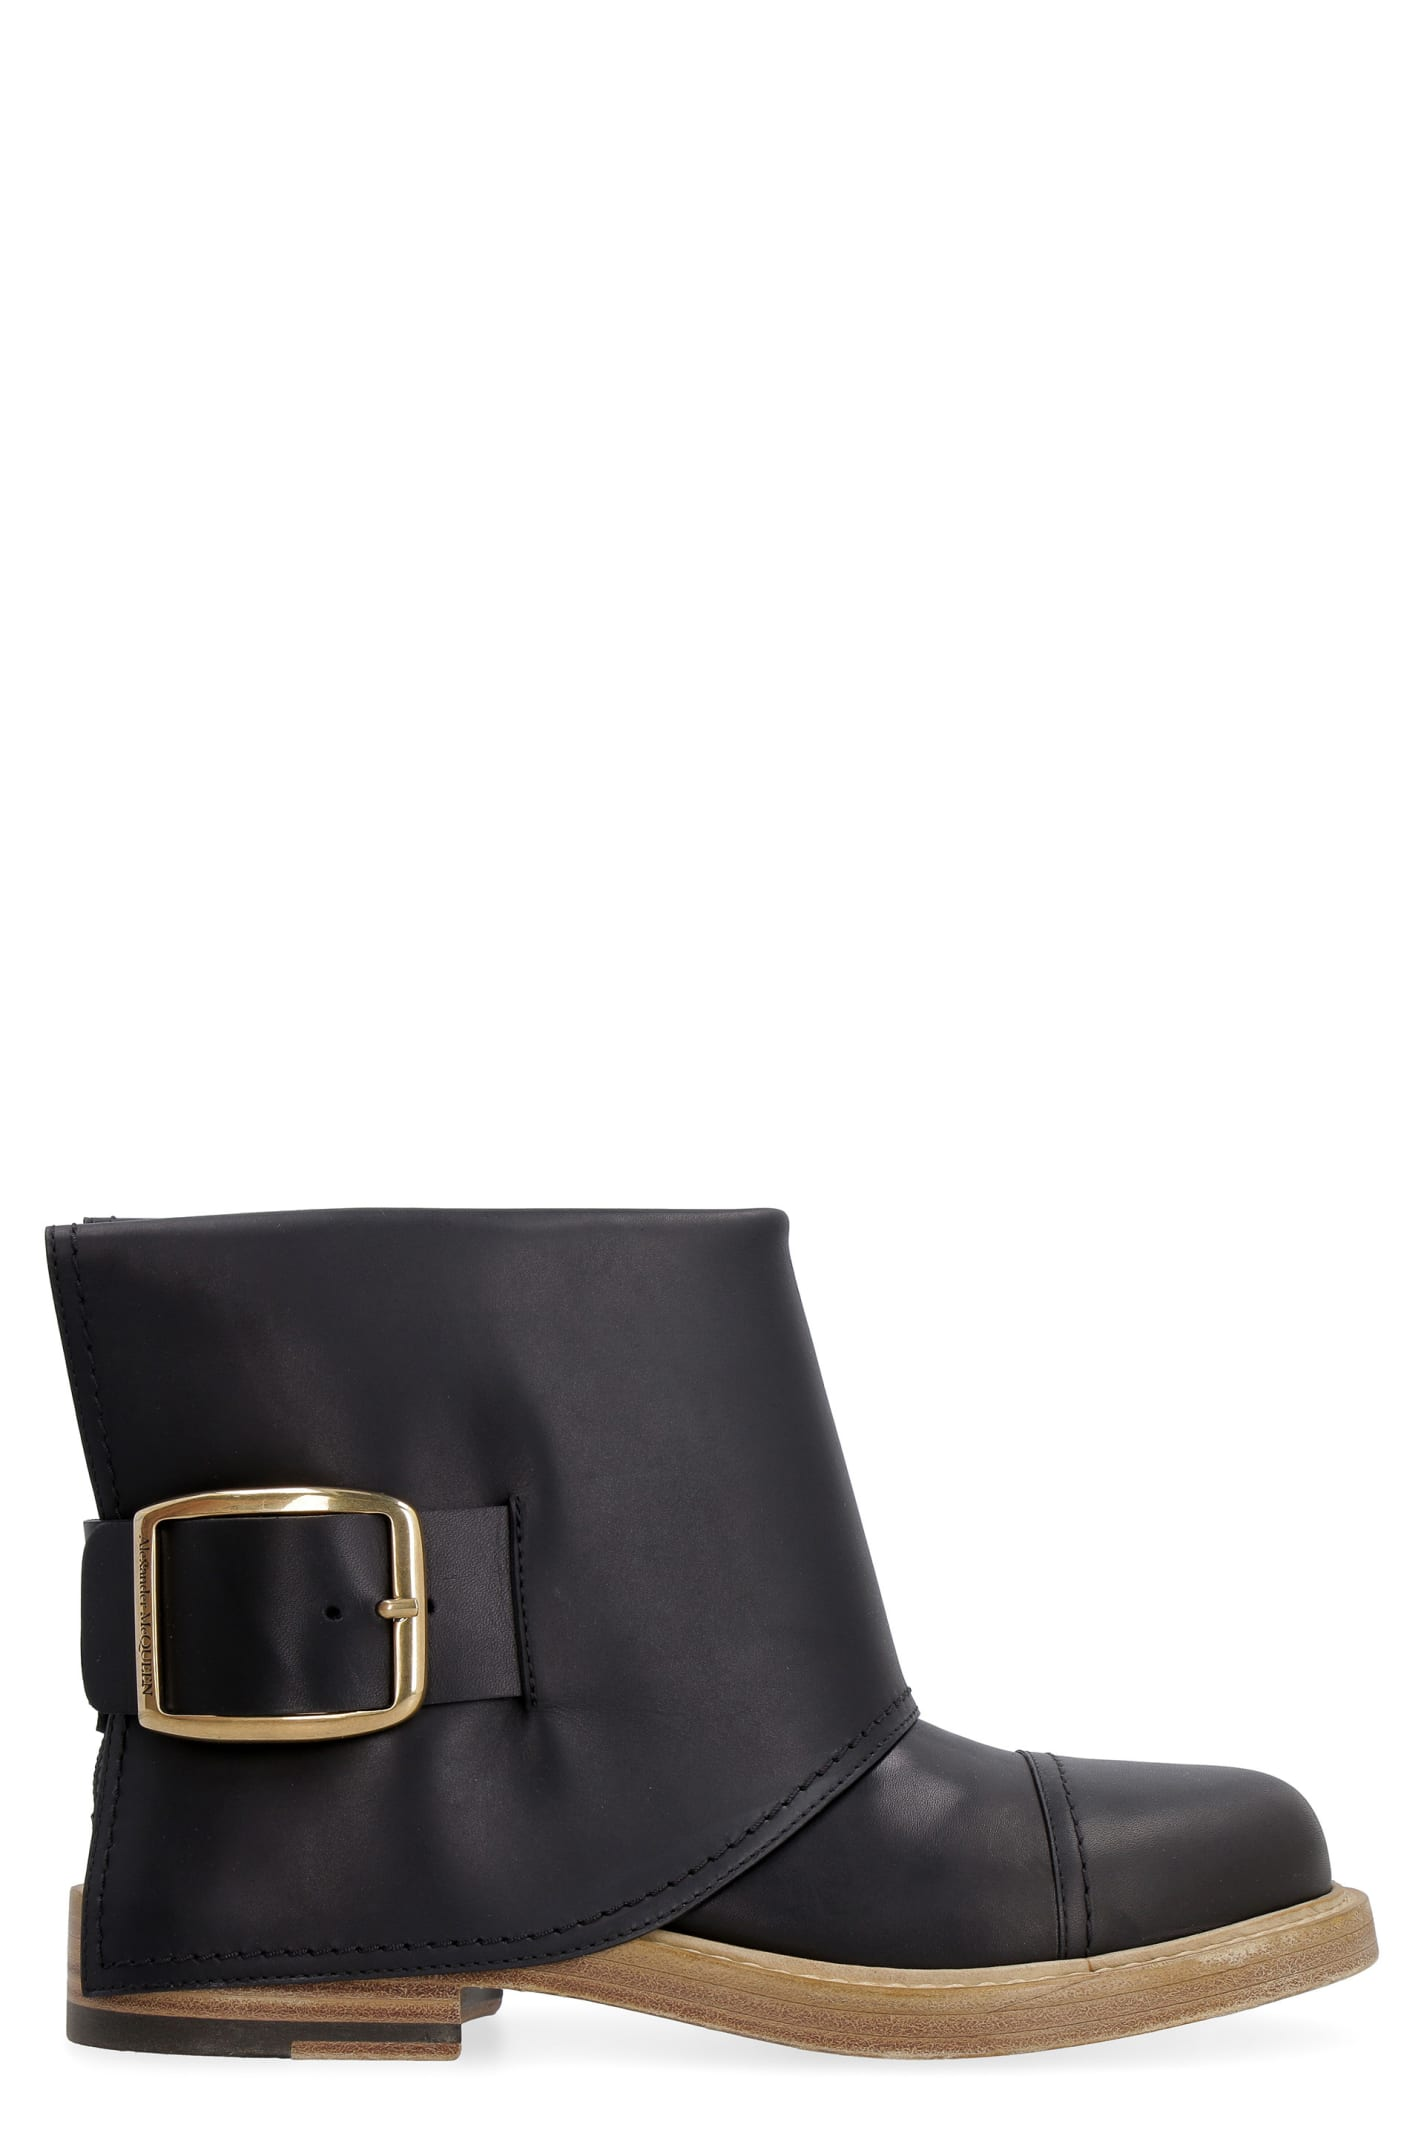 Alexander McQueen Leather Ankle-boots With Buckle